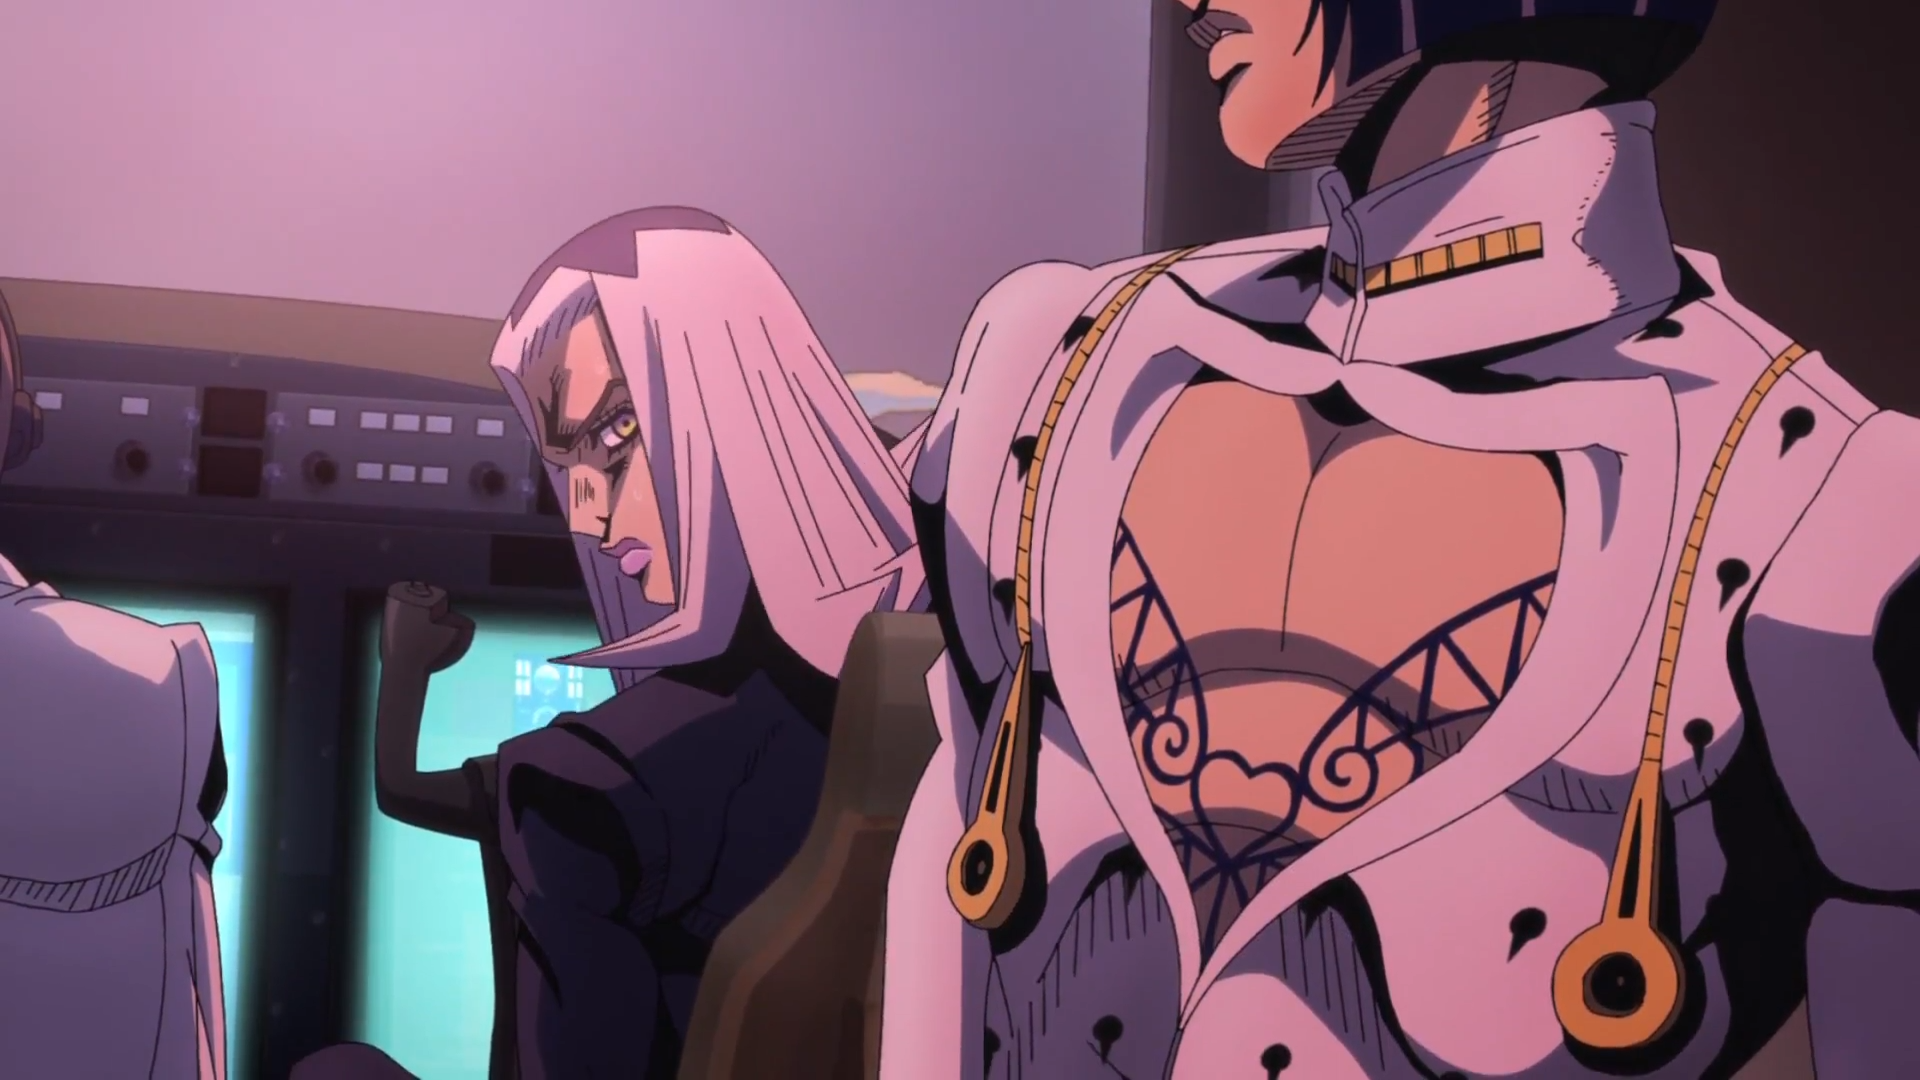 It Look Like Abbachio Is Flexing But Has A Really Small Arm R Shitpostcrusaders Jojo S Bizarre Adventure Know Your Meme Read hot and popular stories about abbacchio on wattpad. small arm r shitpostcrusaders